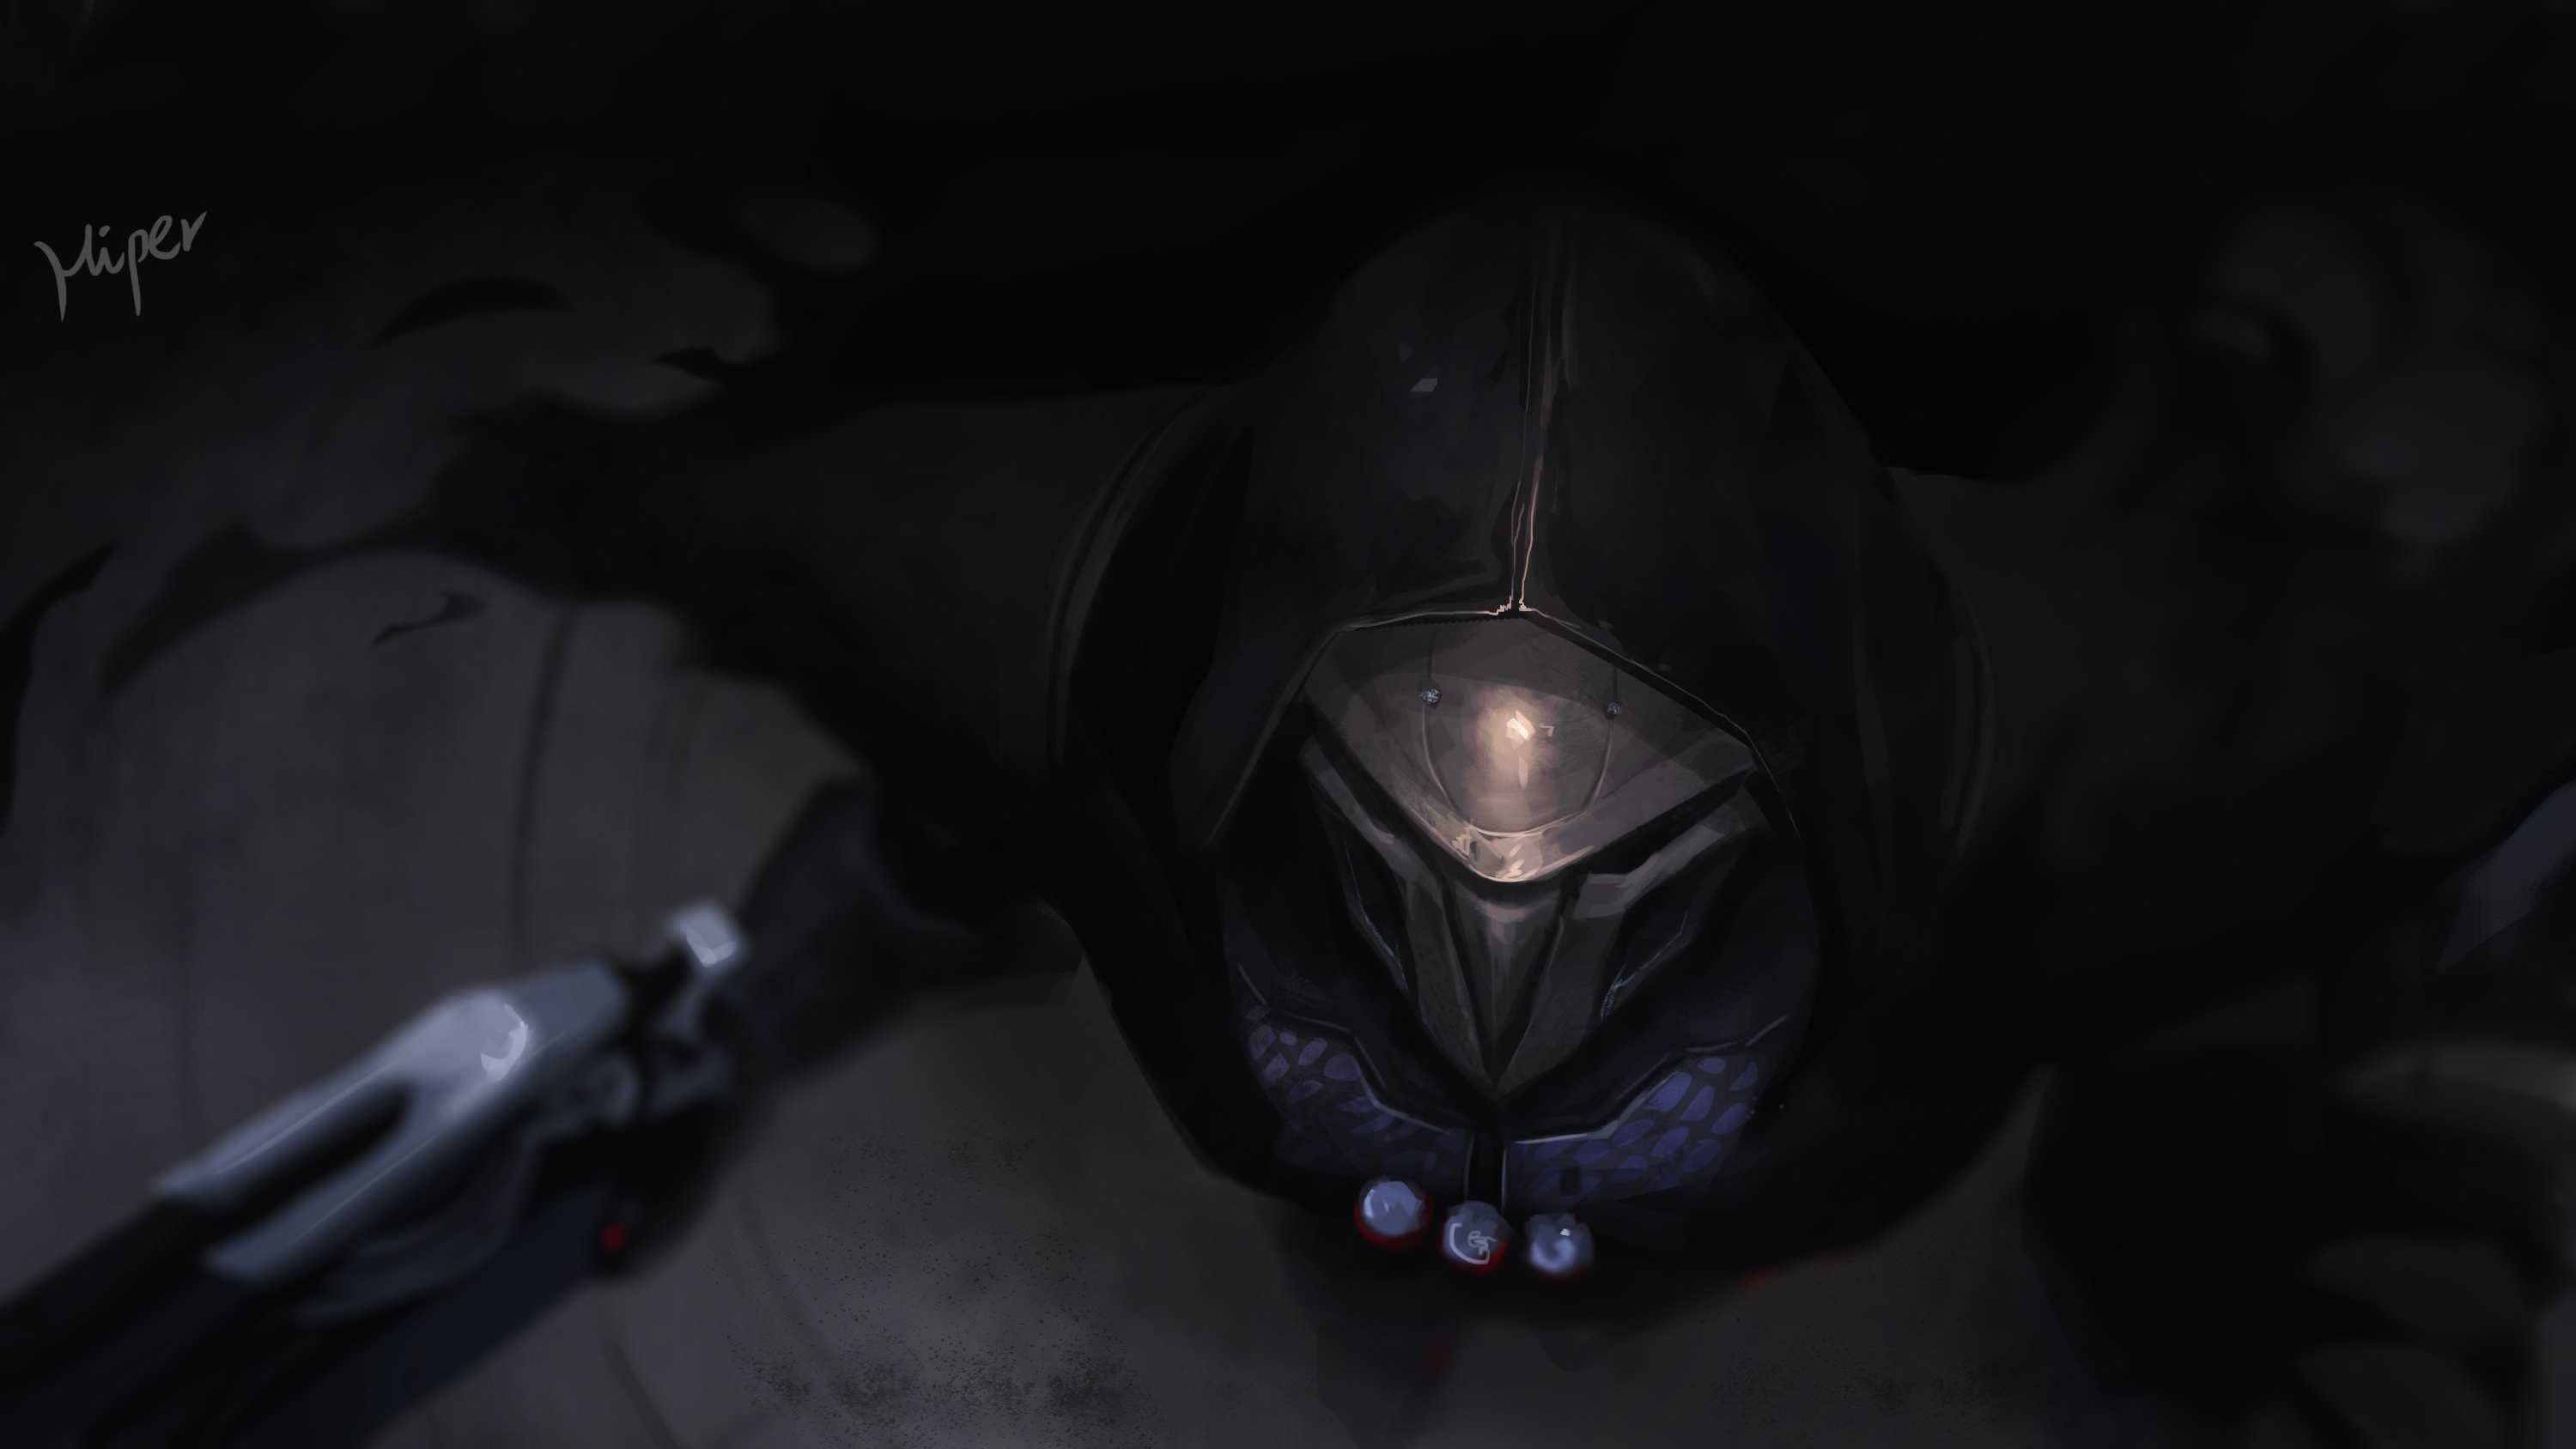 reaper in overwatch hd games 4k wallpapers images